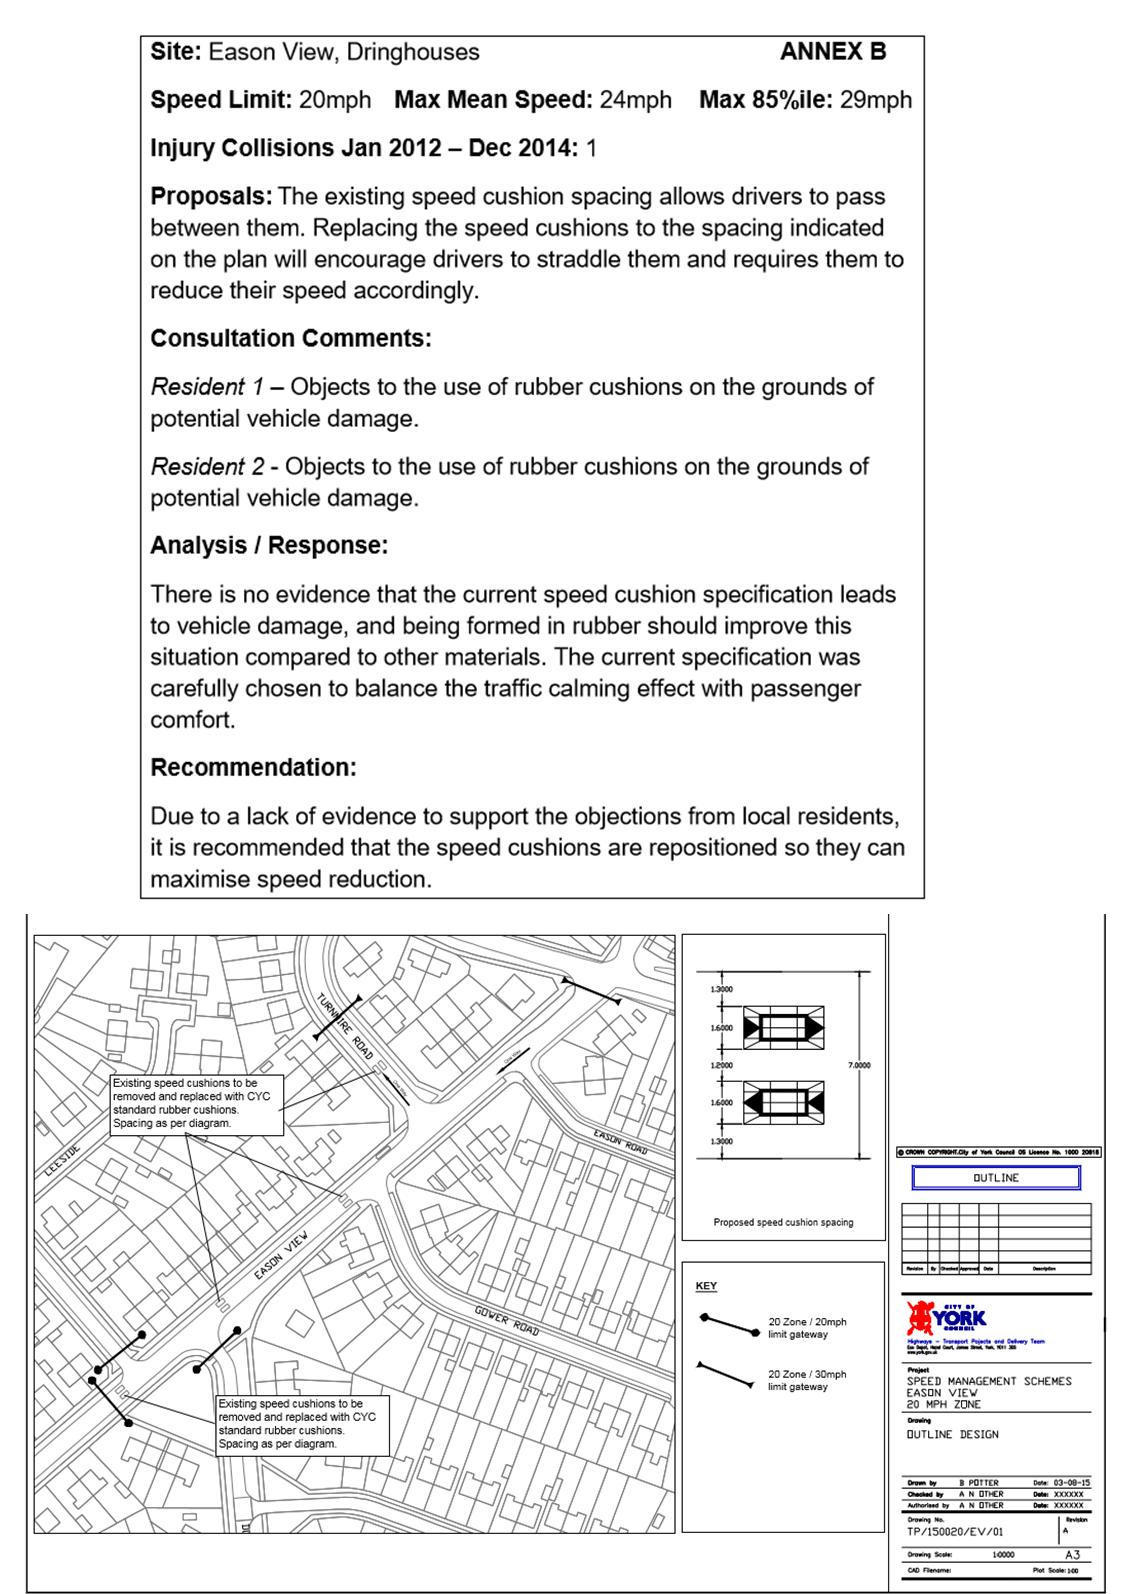 Eason View speed hump plans